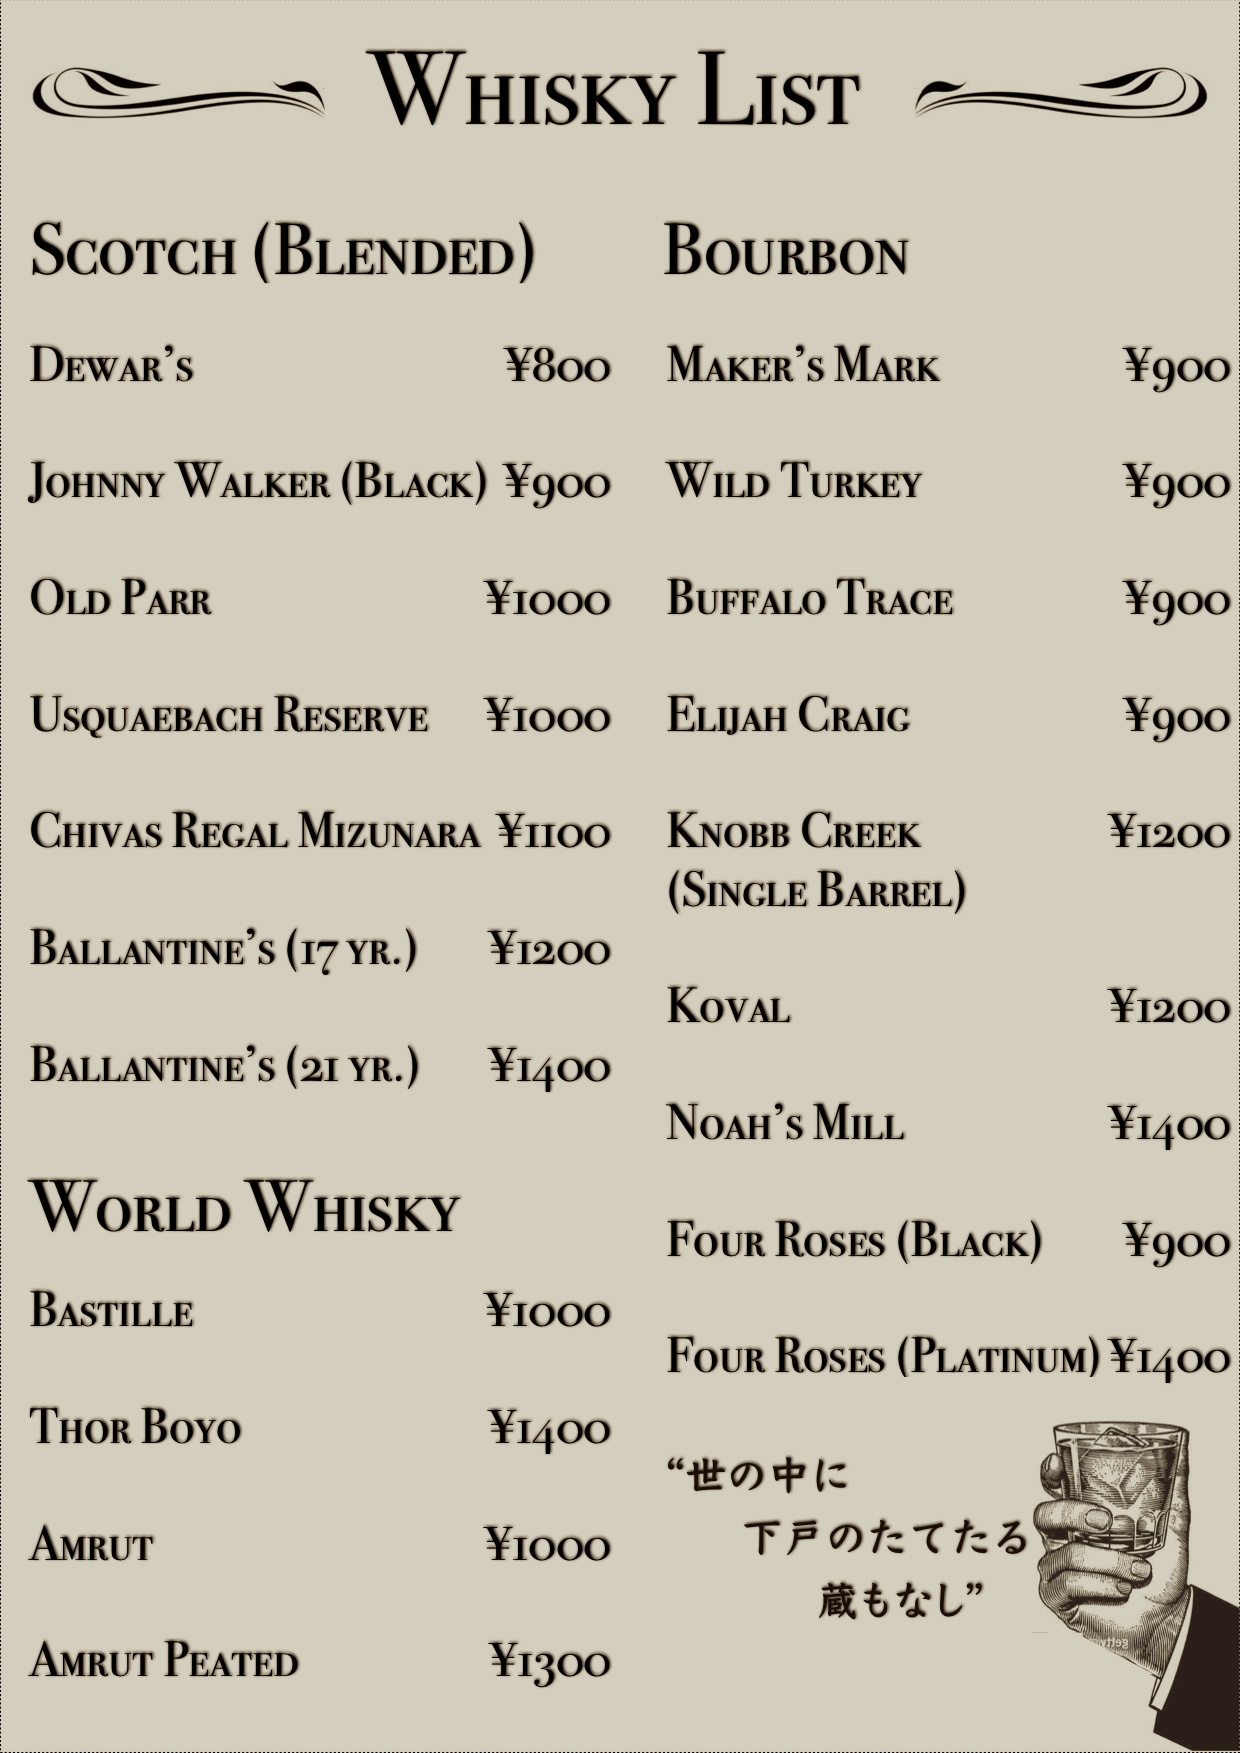 Scotch (Blended) / Bourbon / World Whisky